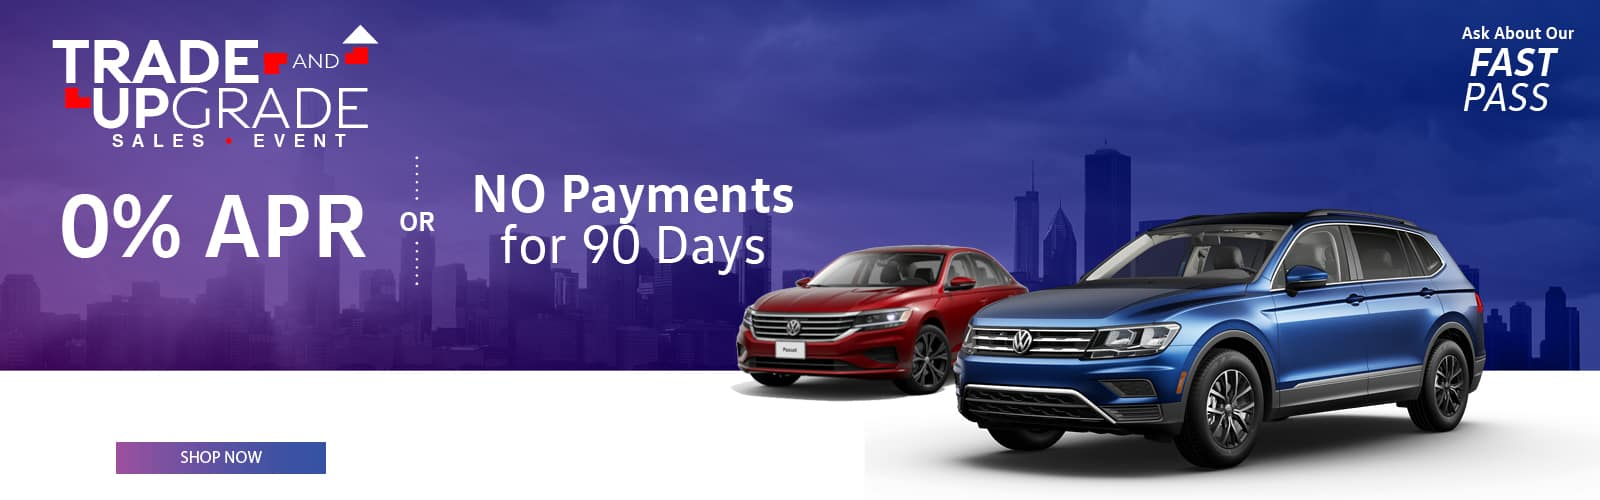 0 APR or no payment for 90 days